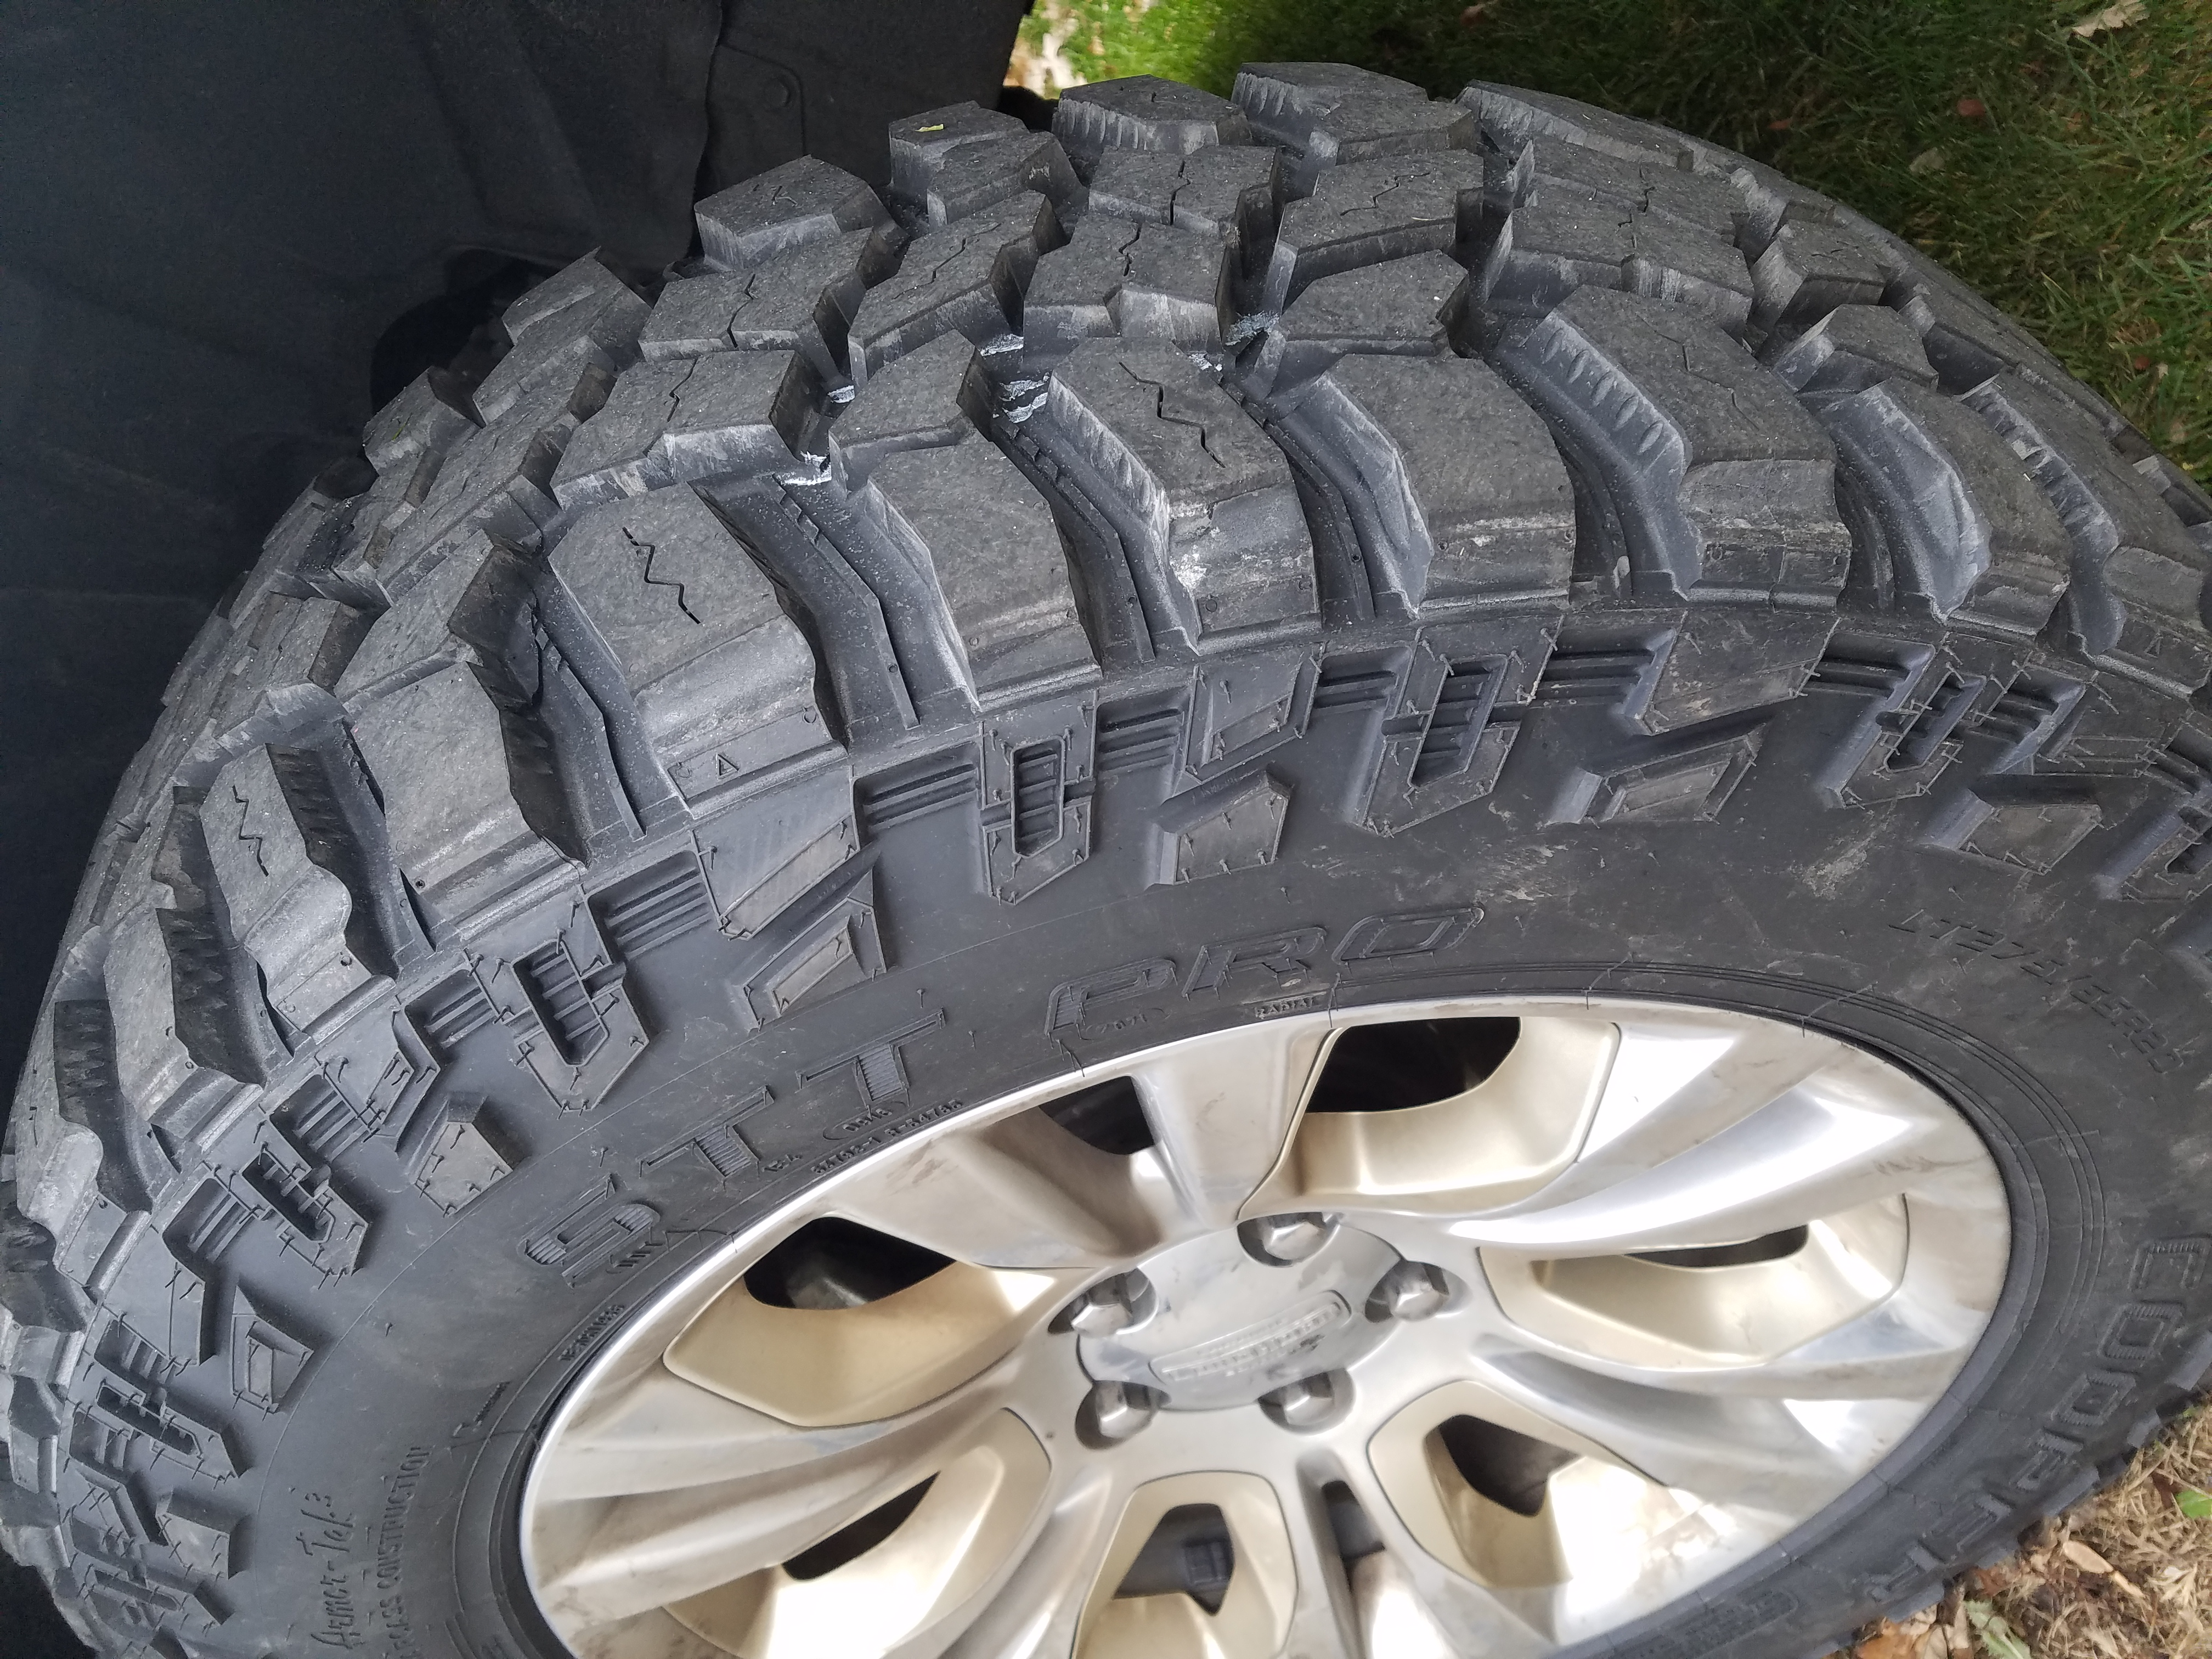 35 Inch Tires On Stock 20 Quot Wheels Lift Kit Required Or Is